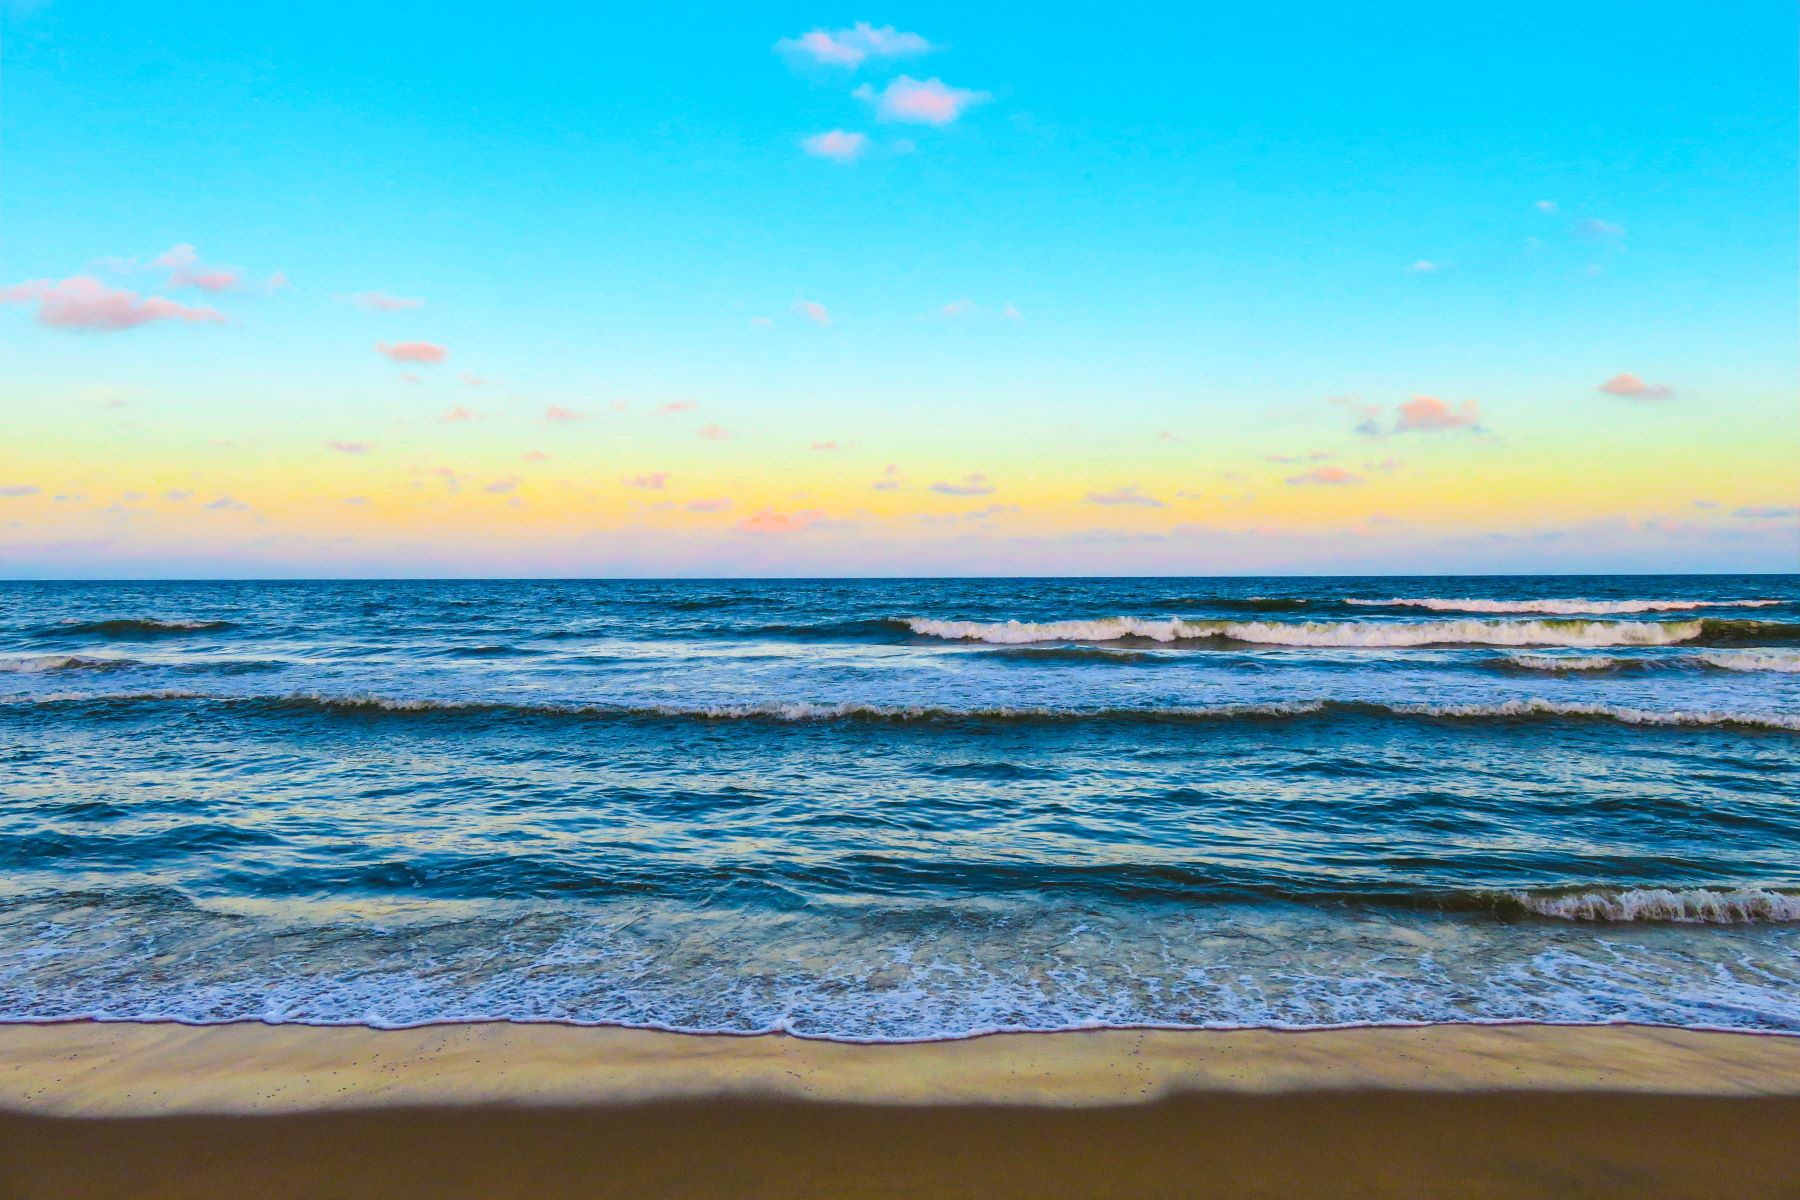 Property for Sale at TBD N Hwy A1a N, Hutchinson Island, FL TBD N Hwy A1a N Hutchinson Island, Florida 34949 United States